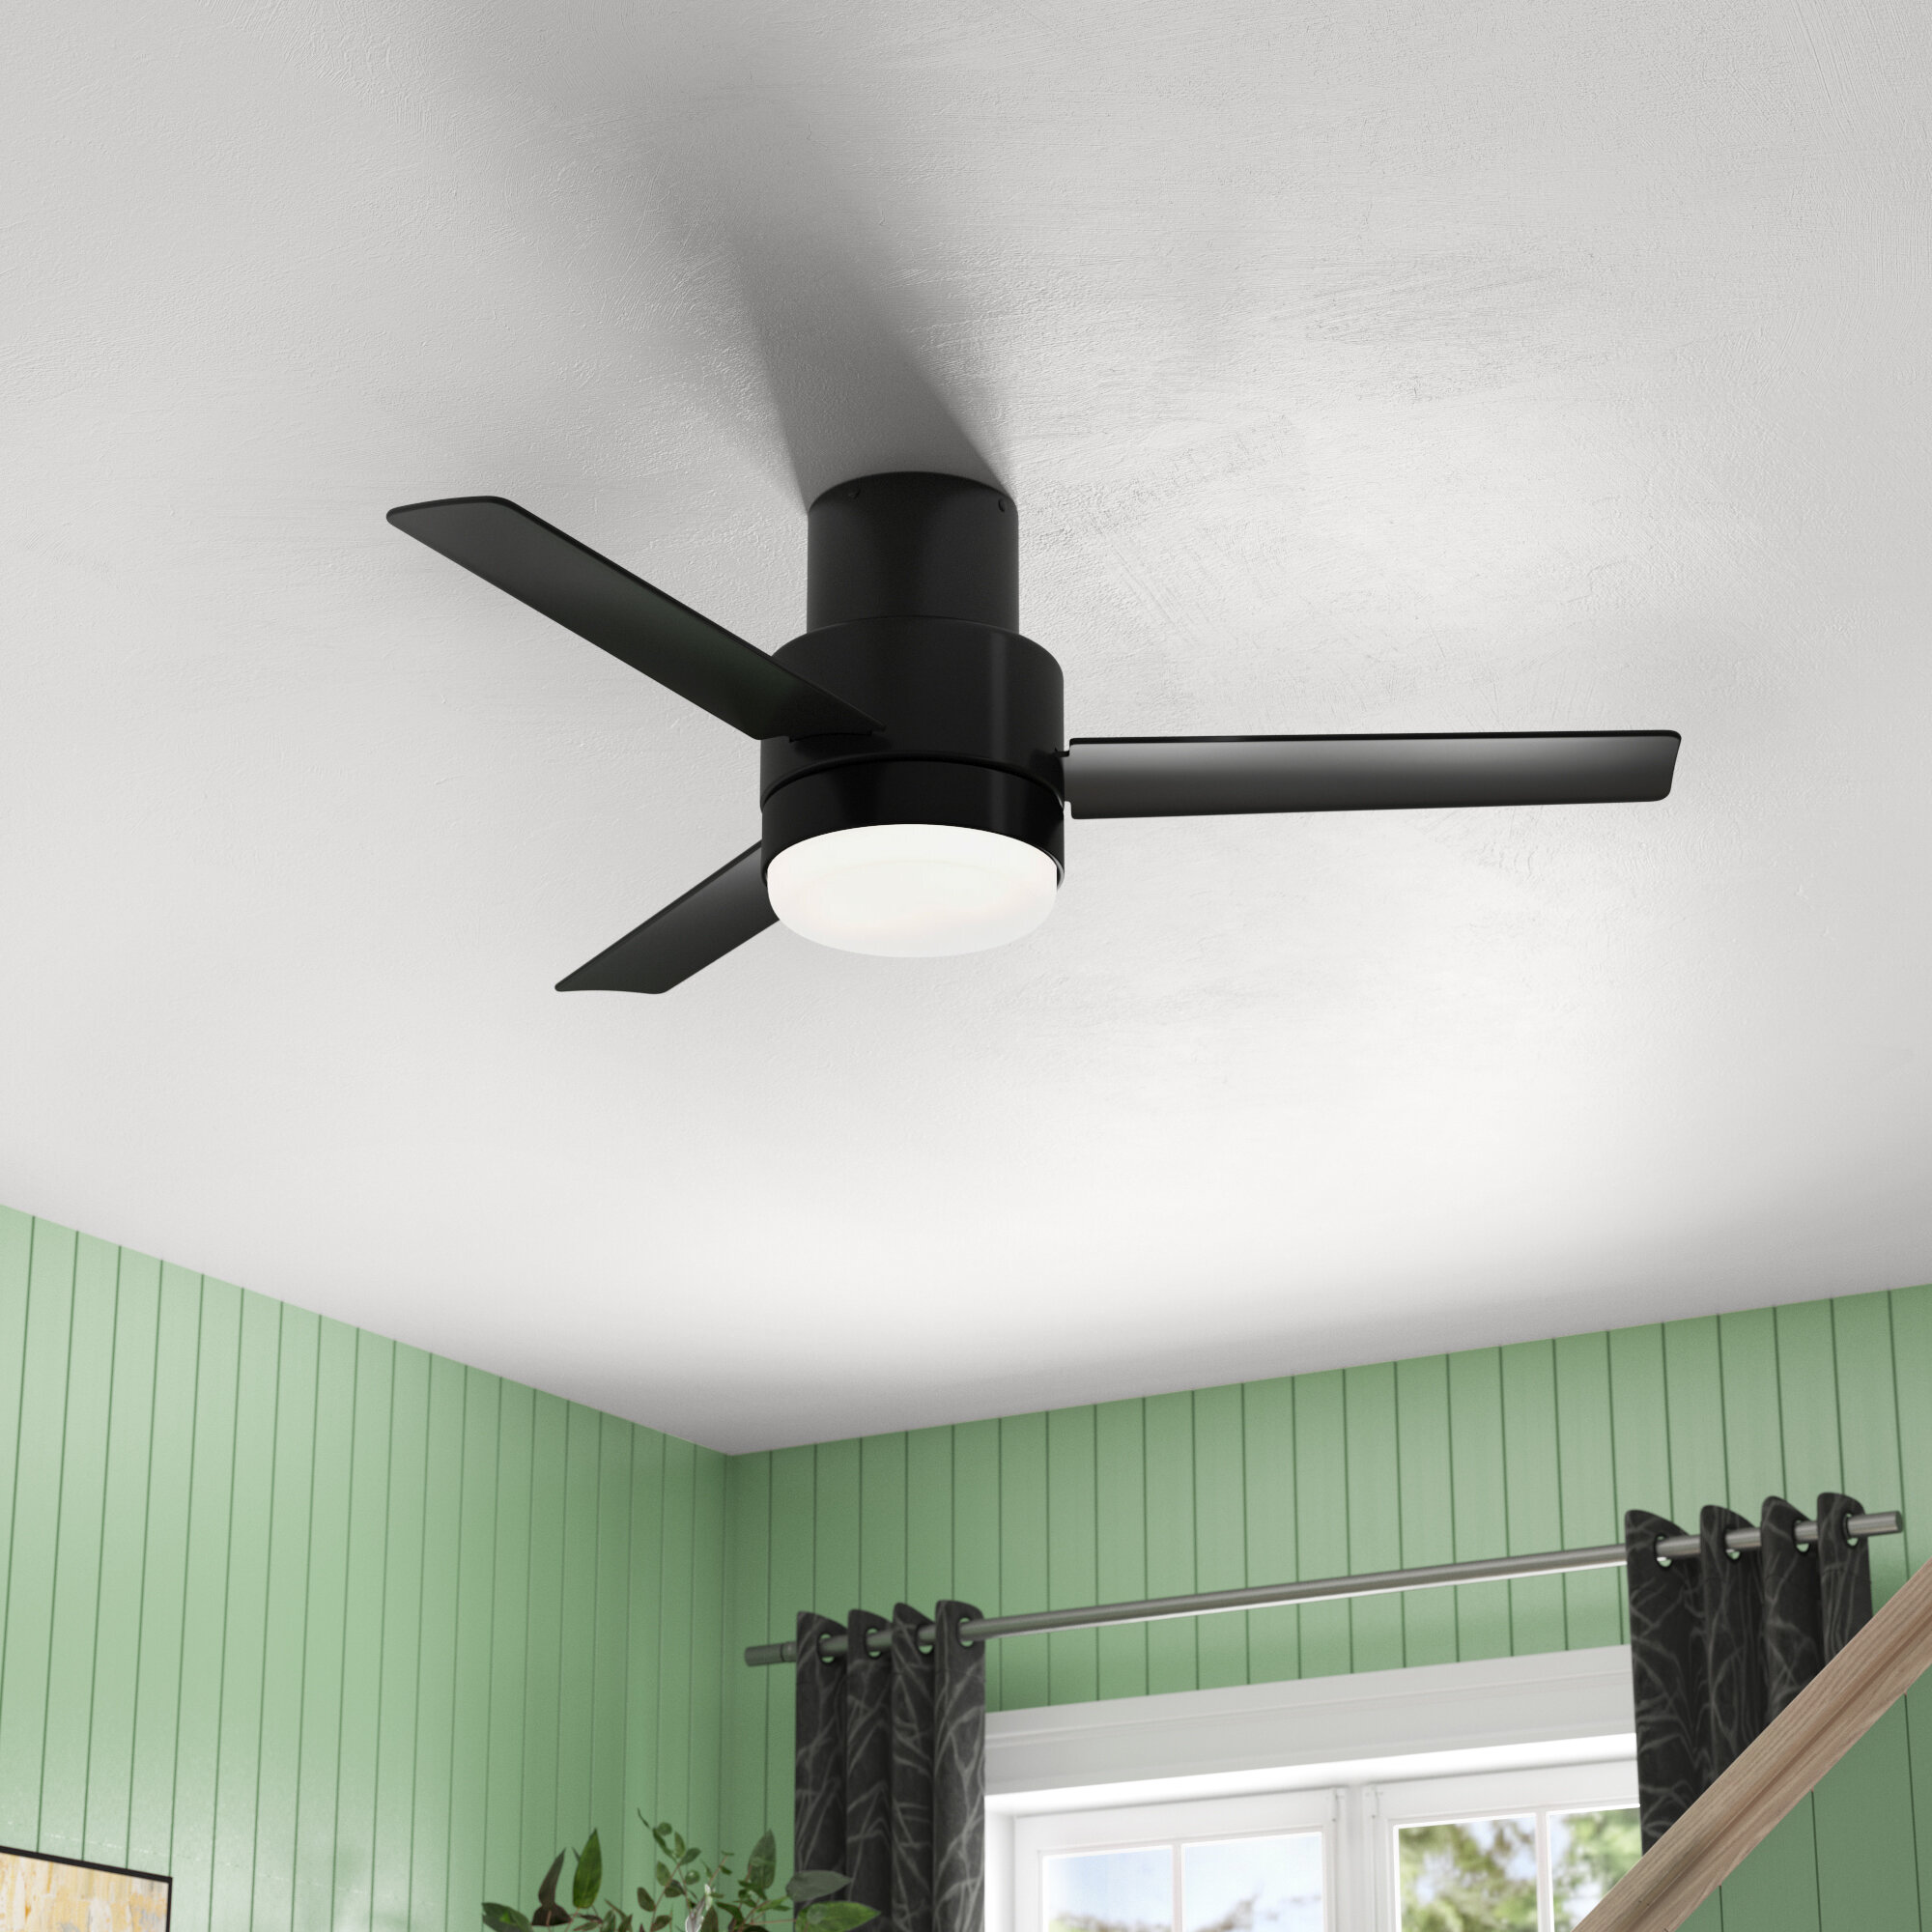 Hunter Fan 44 Gilmour 3 Blade Flush Mount Ceiling Fan With Remote Control And Light Kit Included Reviews Wayfair